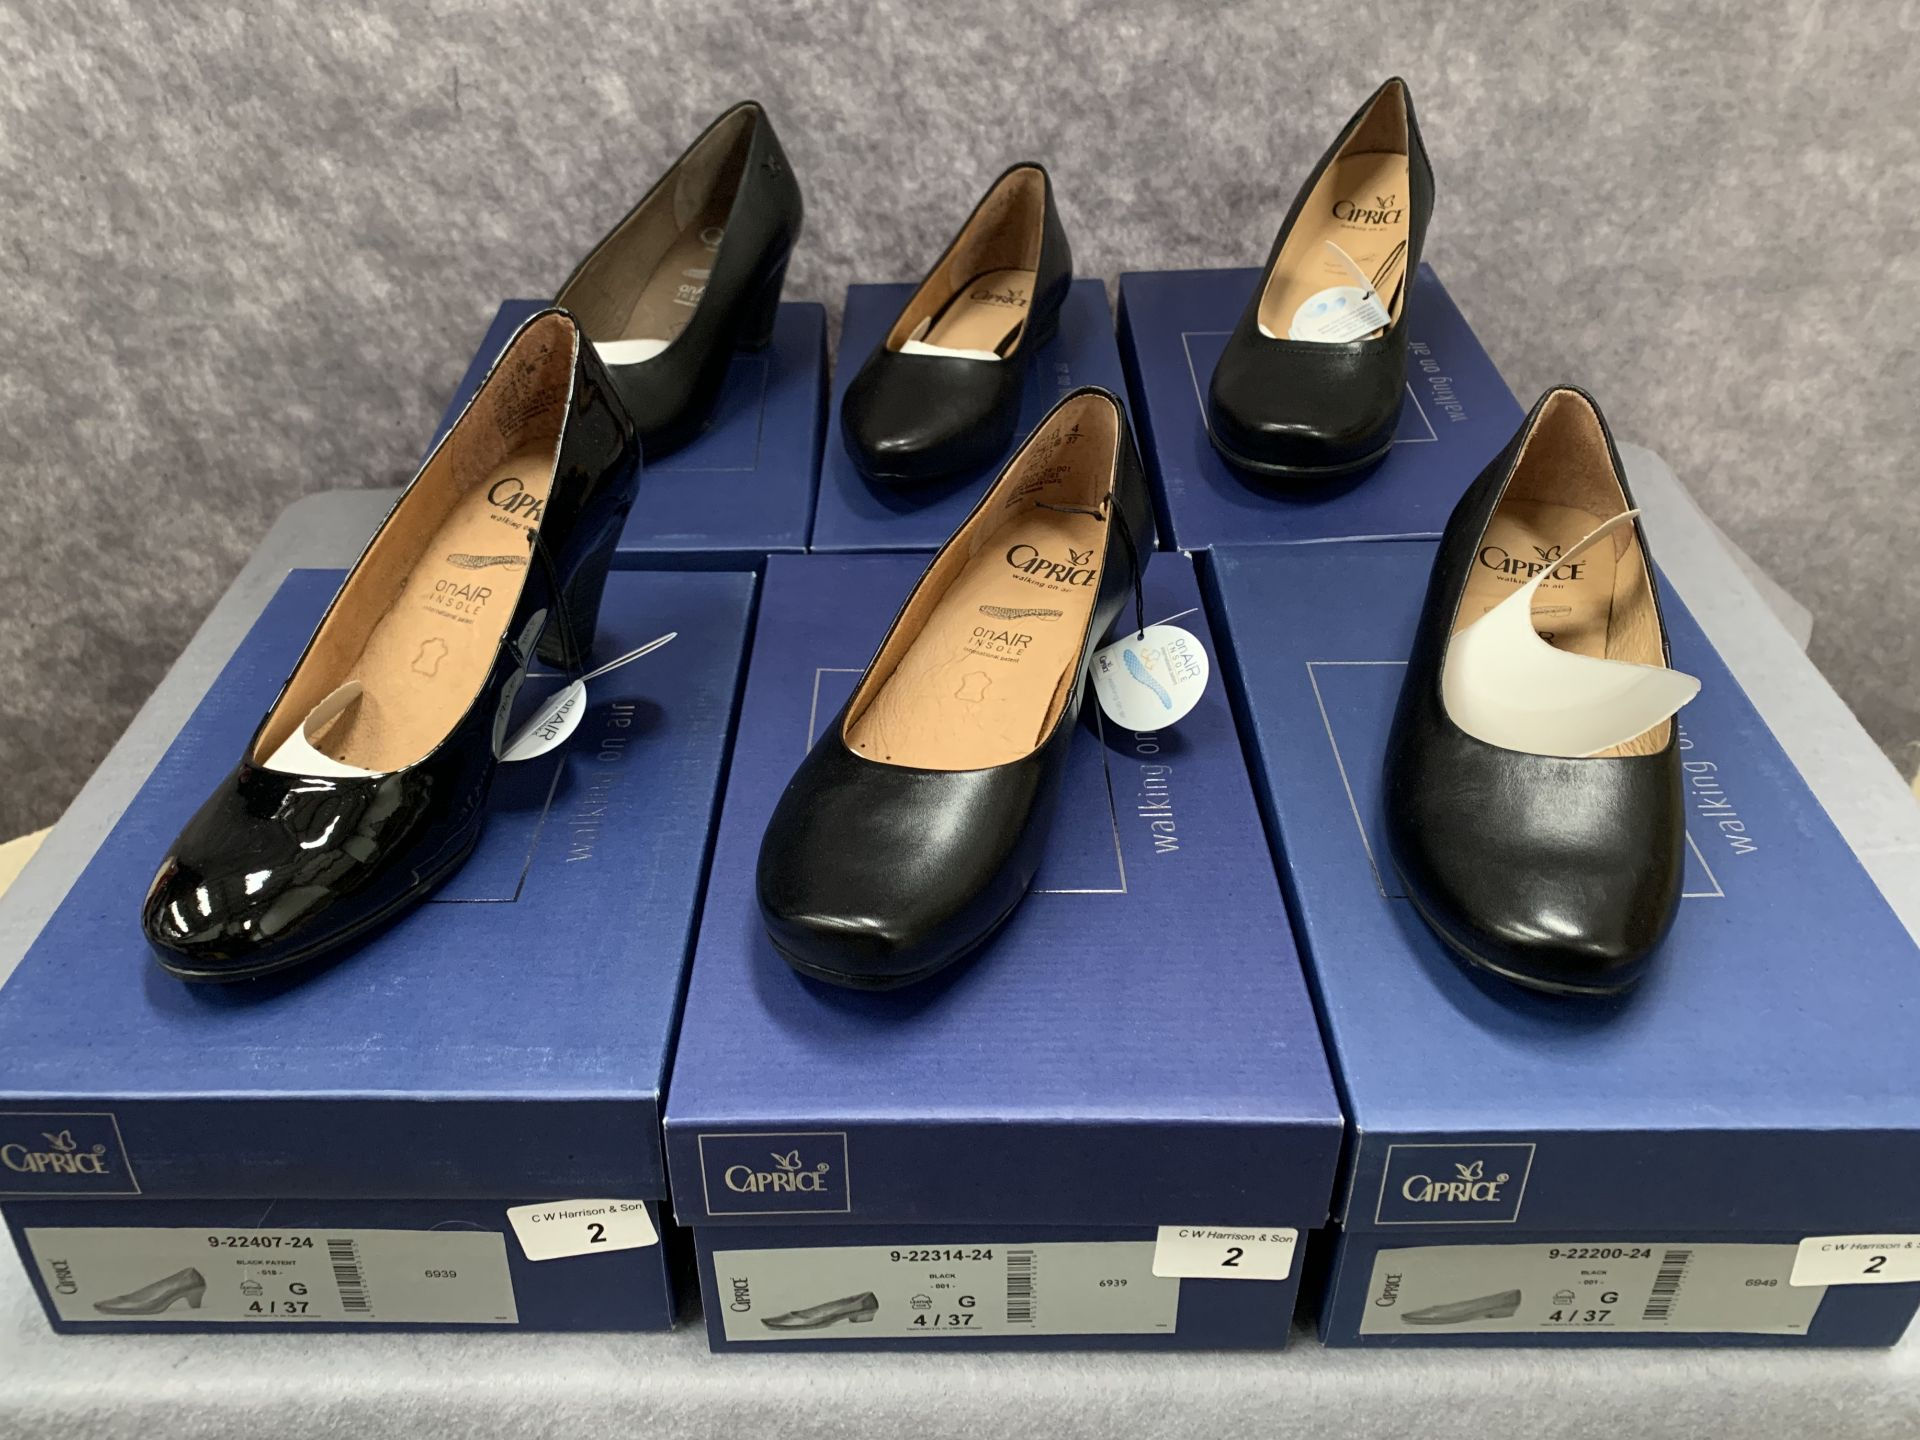 Lot 2 - Six pairs of Caprice ladies shoes in black, various styles, size 4, retail price £59.